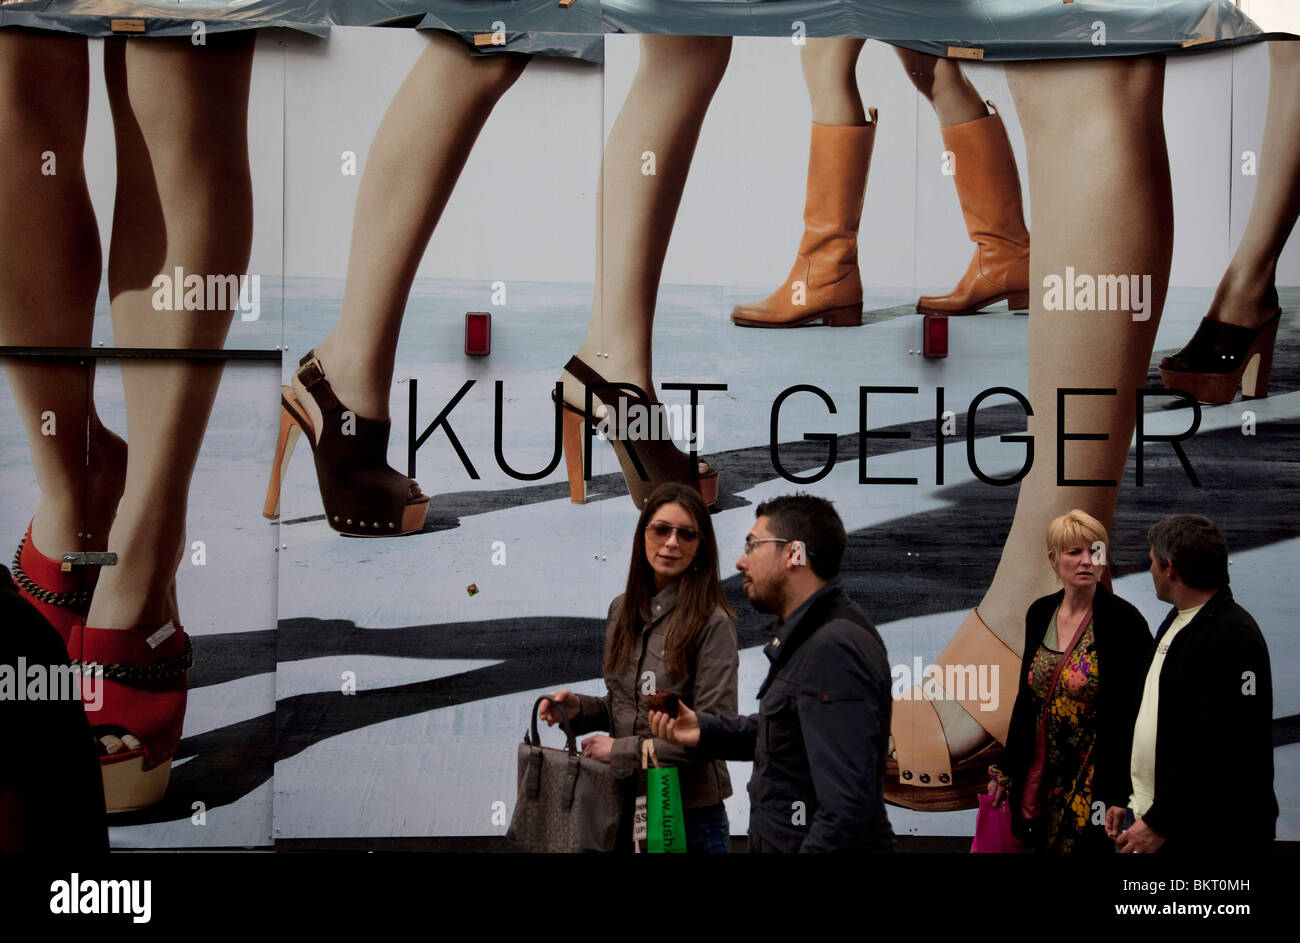 People pass a large fashion poster for Kurt Geiger. Covent Garden in the West End of London. - Stock Image